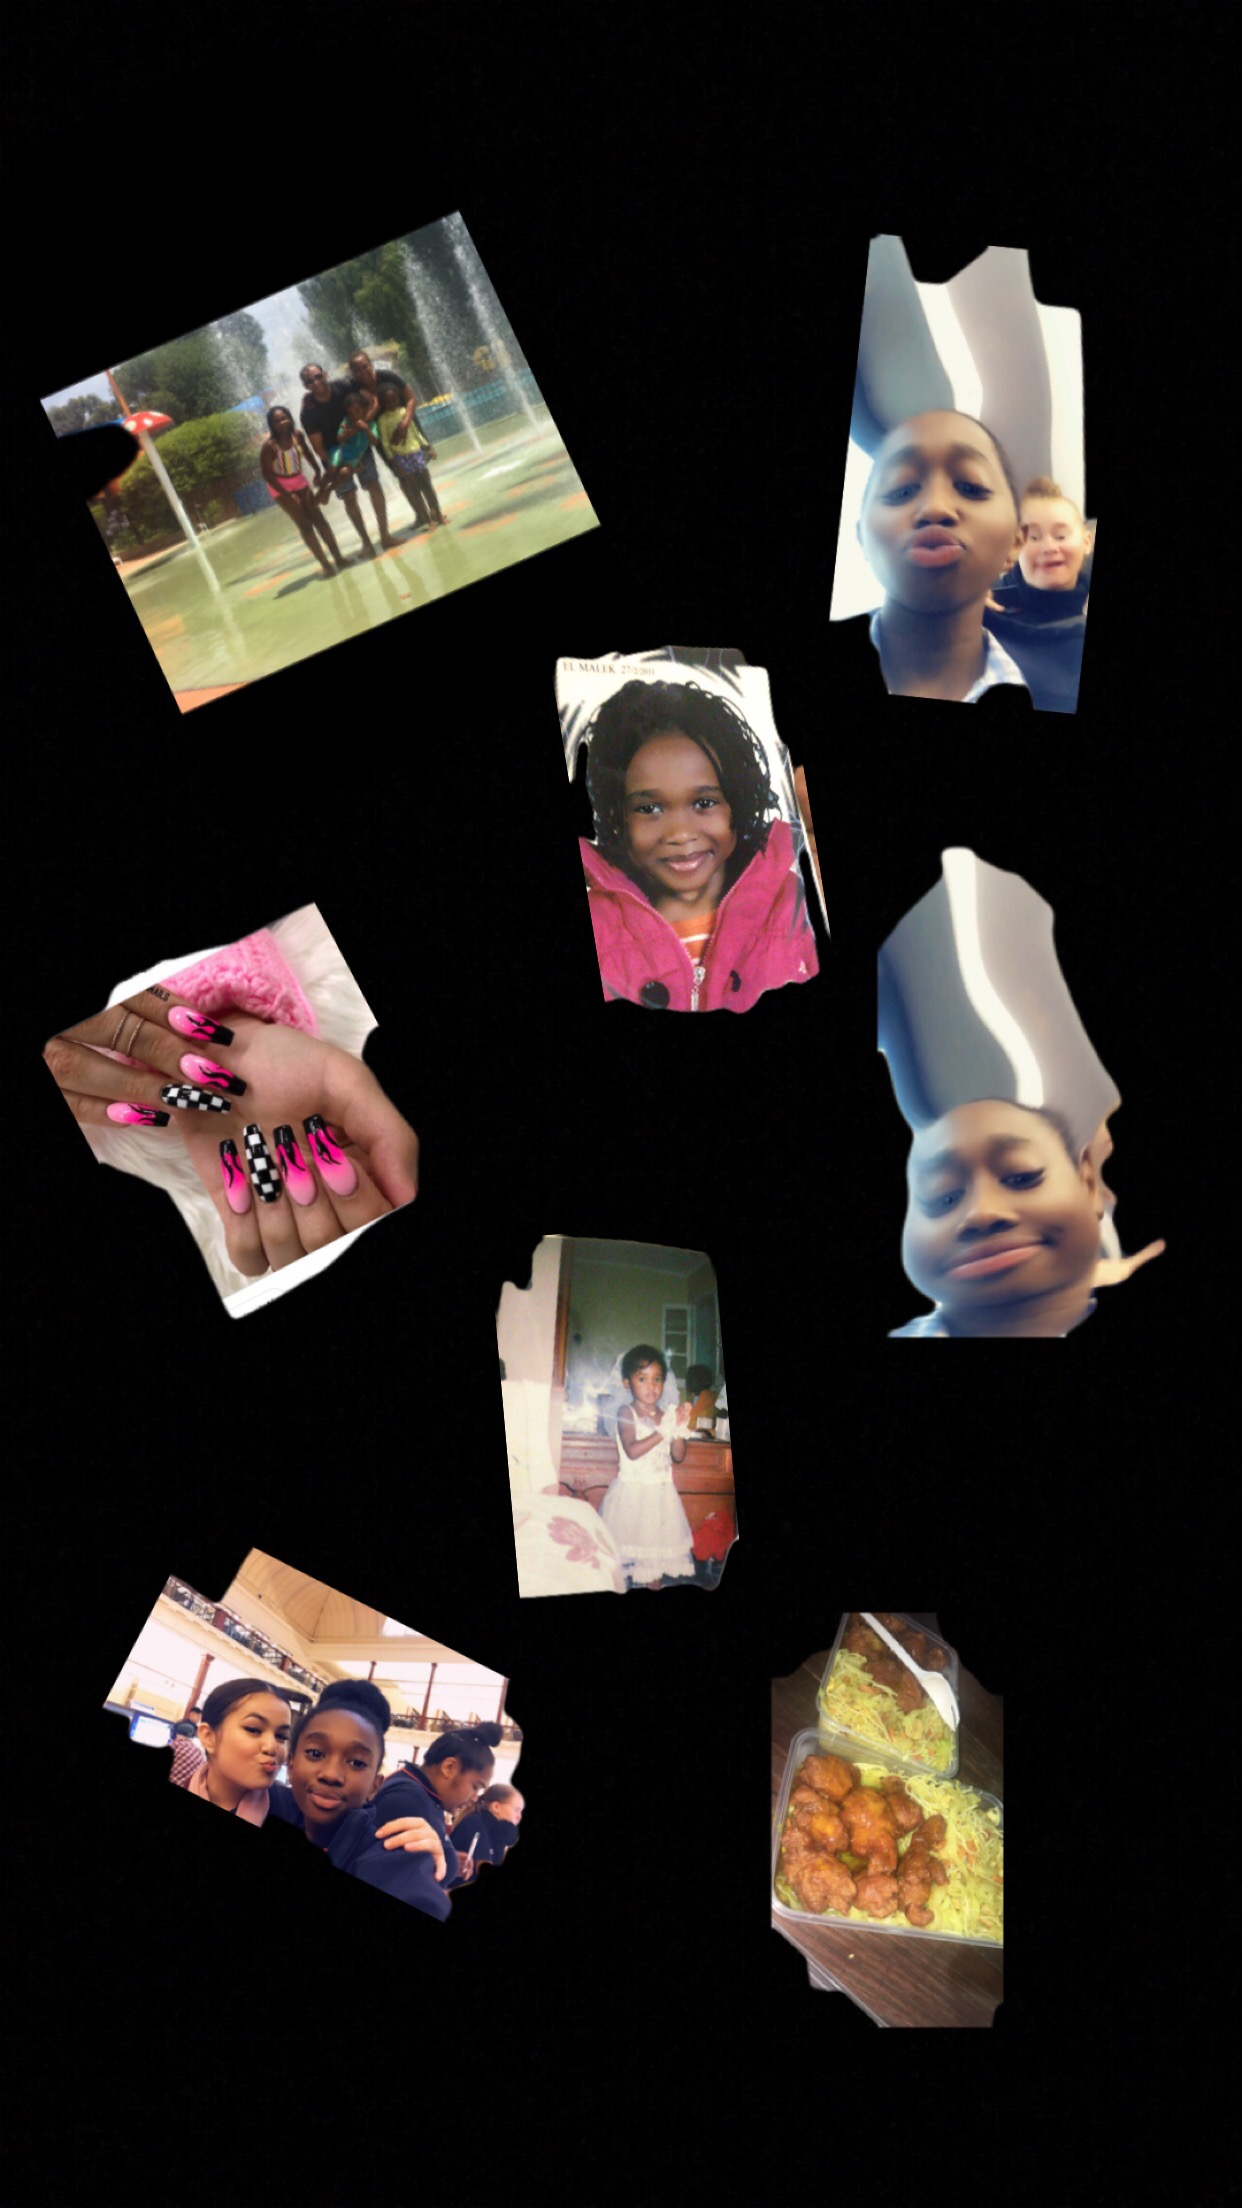 Alana's personality collage